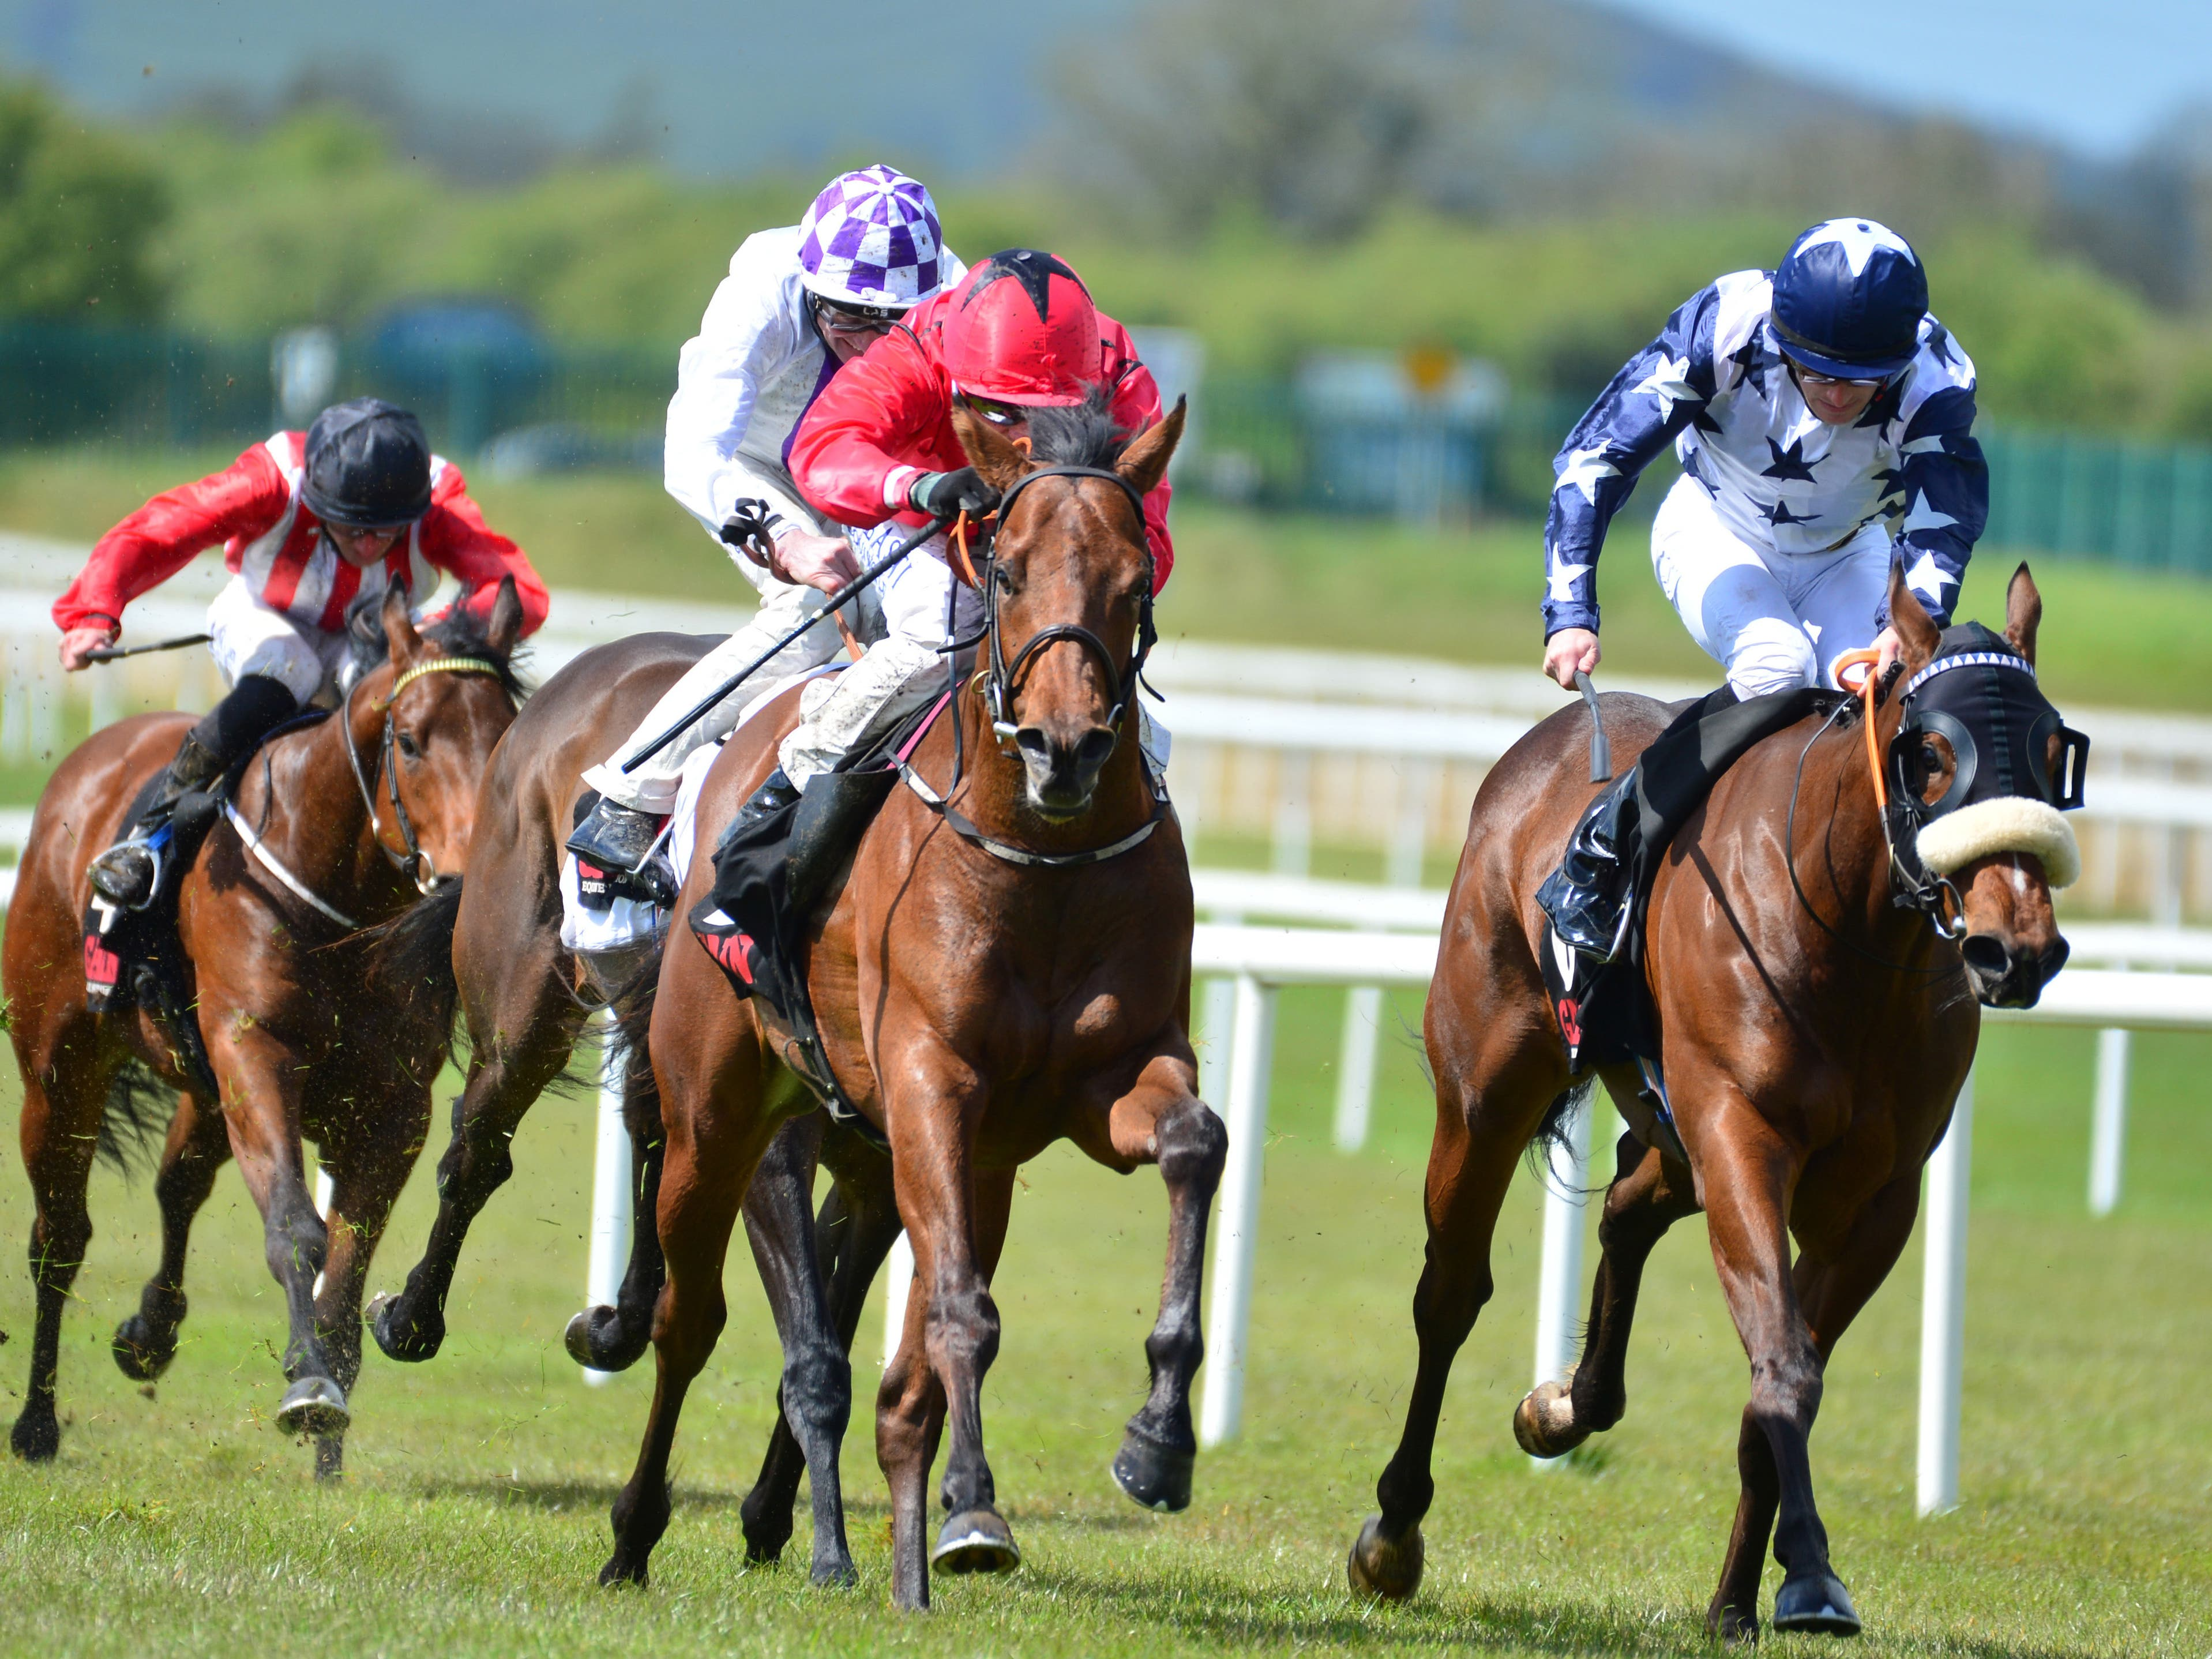 Castle Star ridden by jockey Chris Hayes (centre) wins the GAIN First Filer Stakes race at the Curragh (PA)